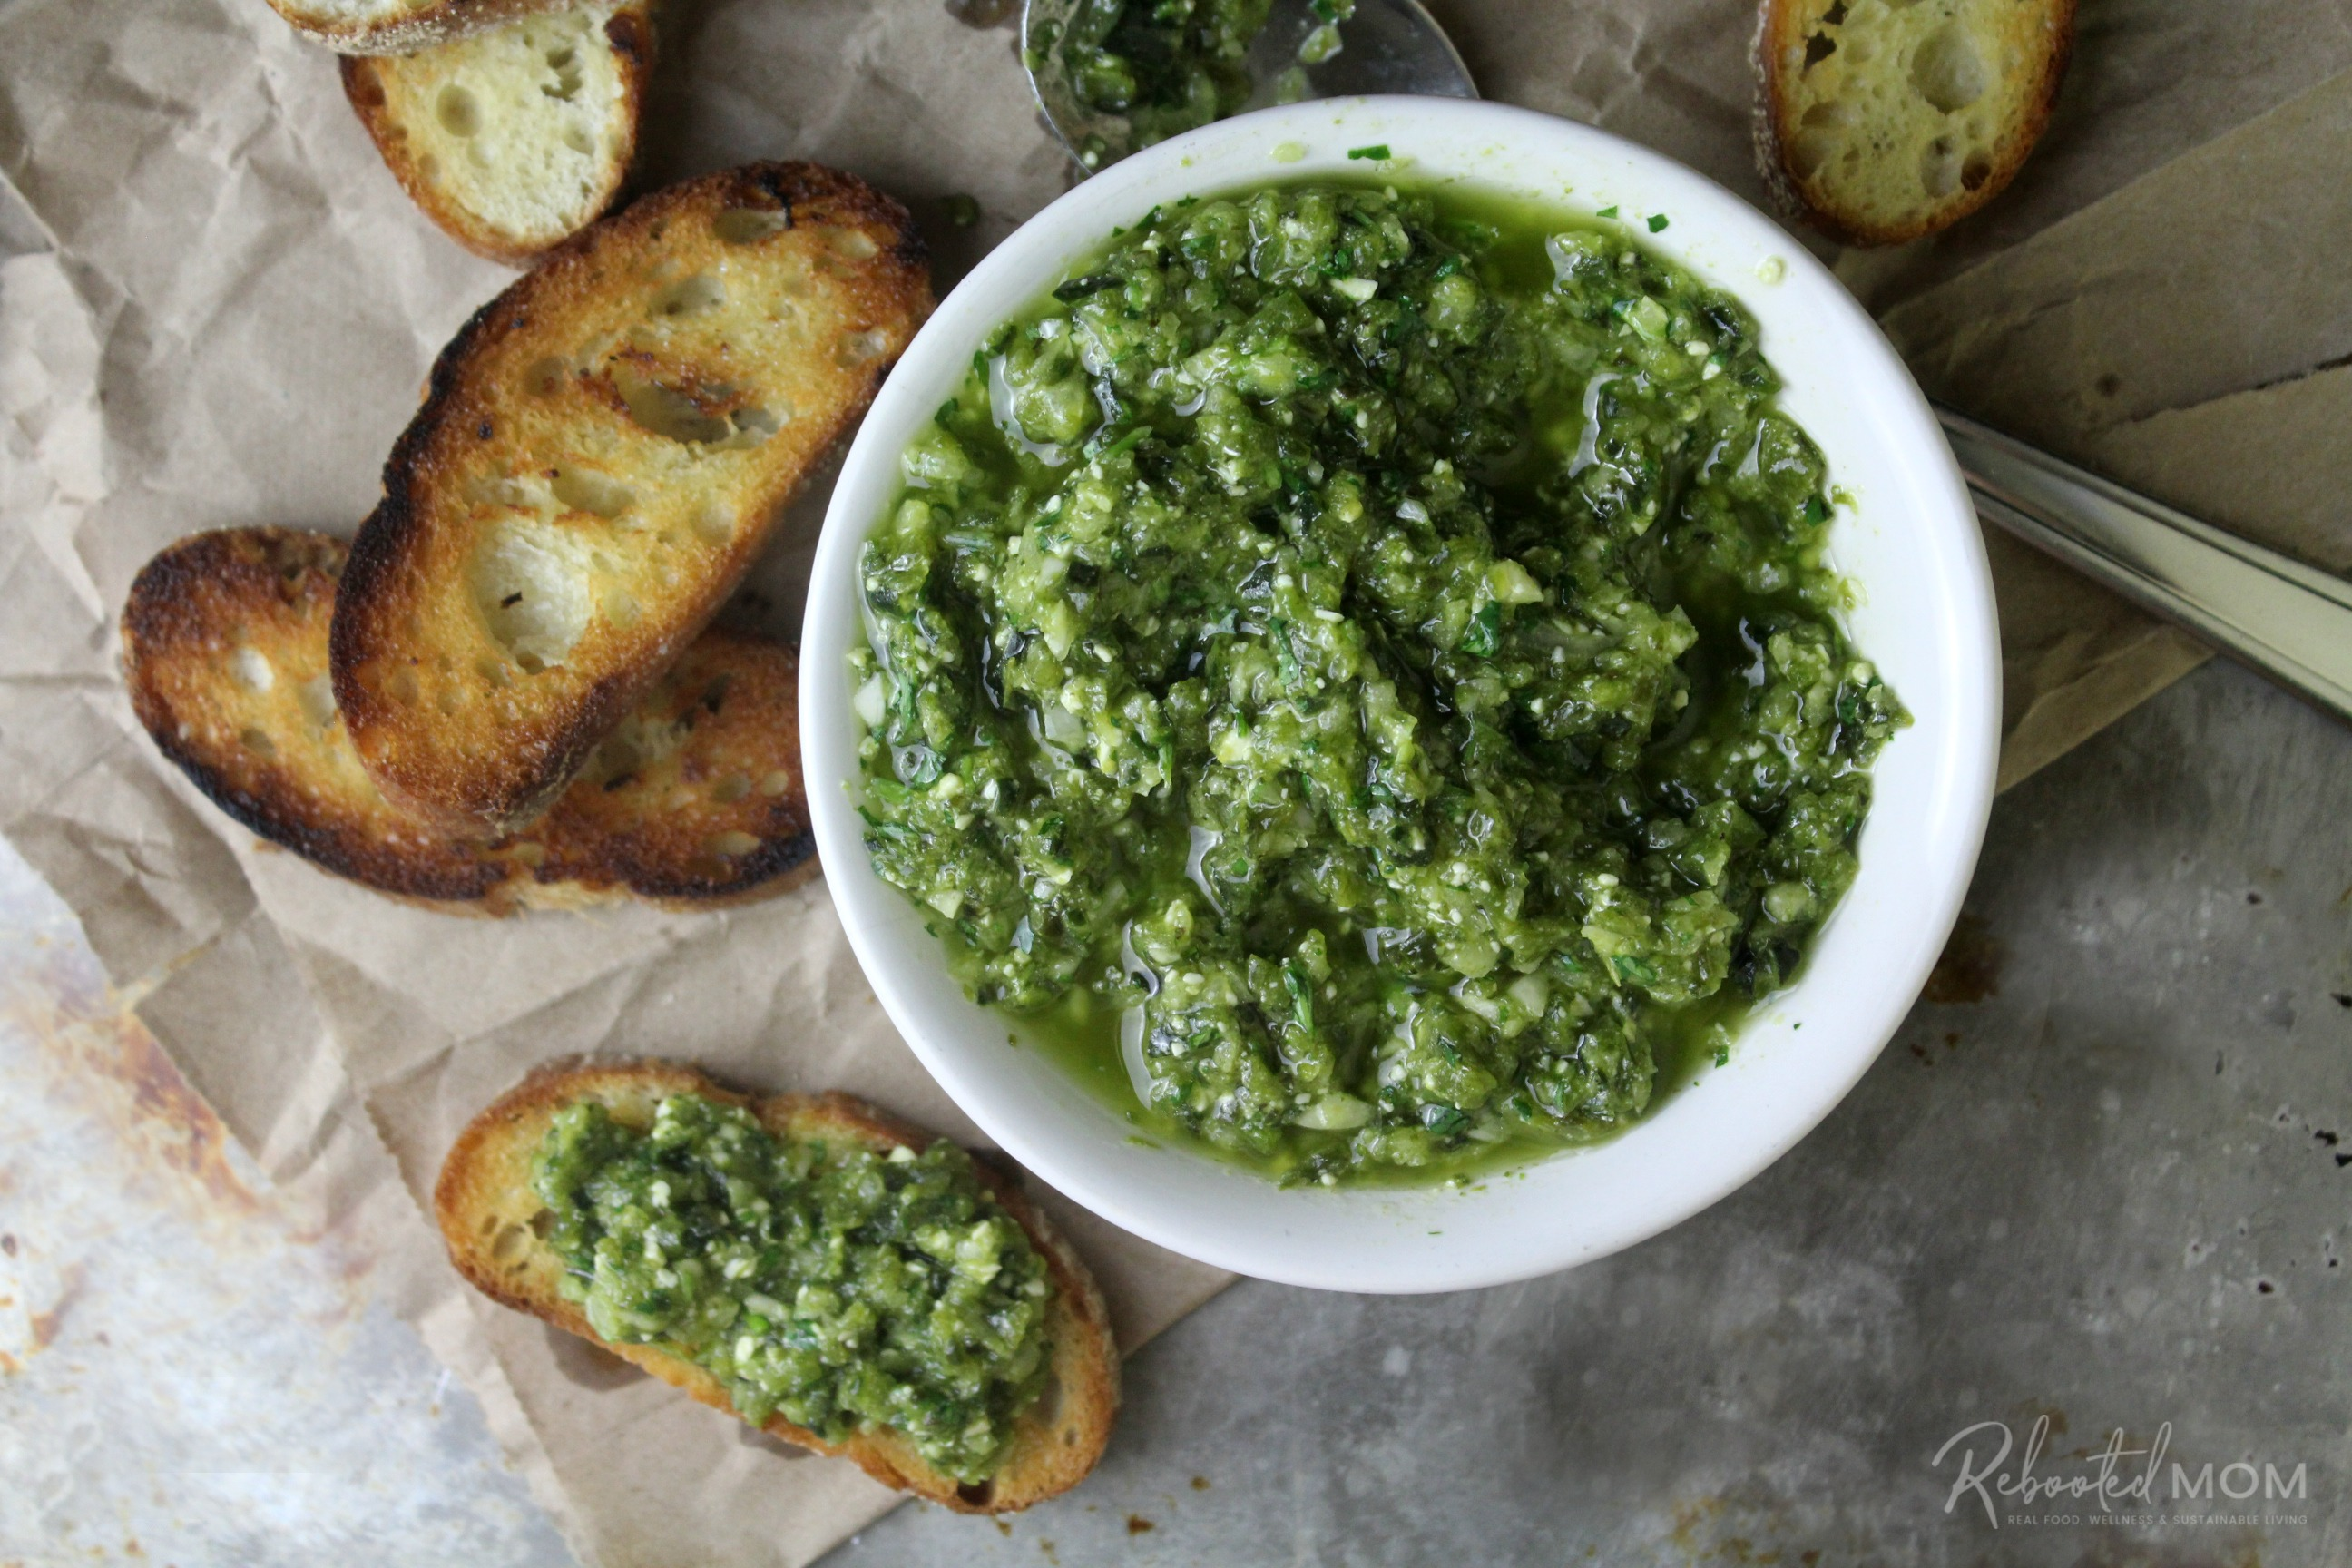 Roasted Poblano and Garlic Pesto spread on a toasted baguette